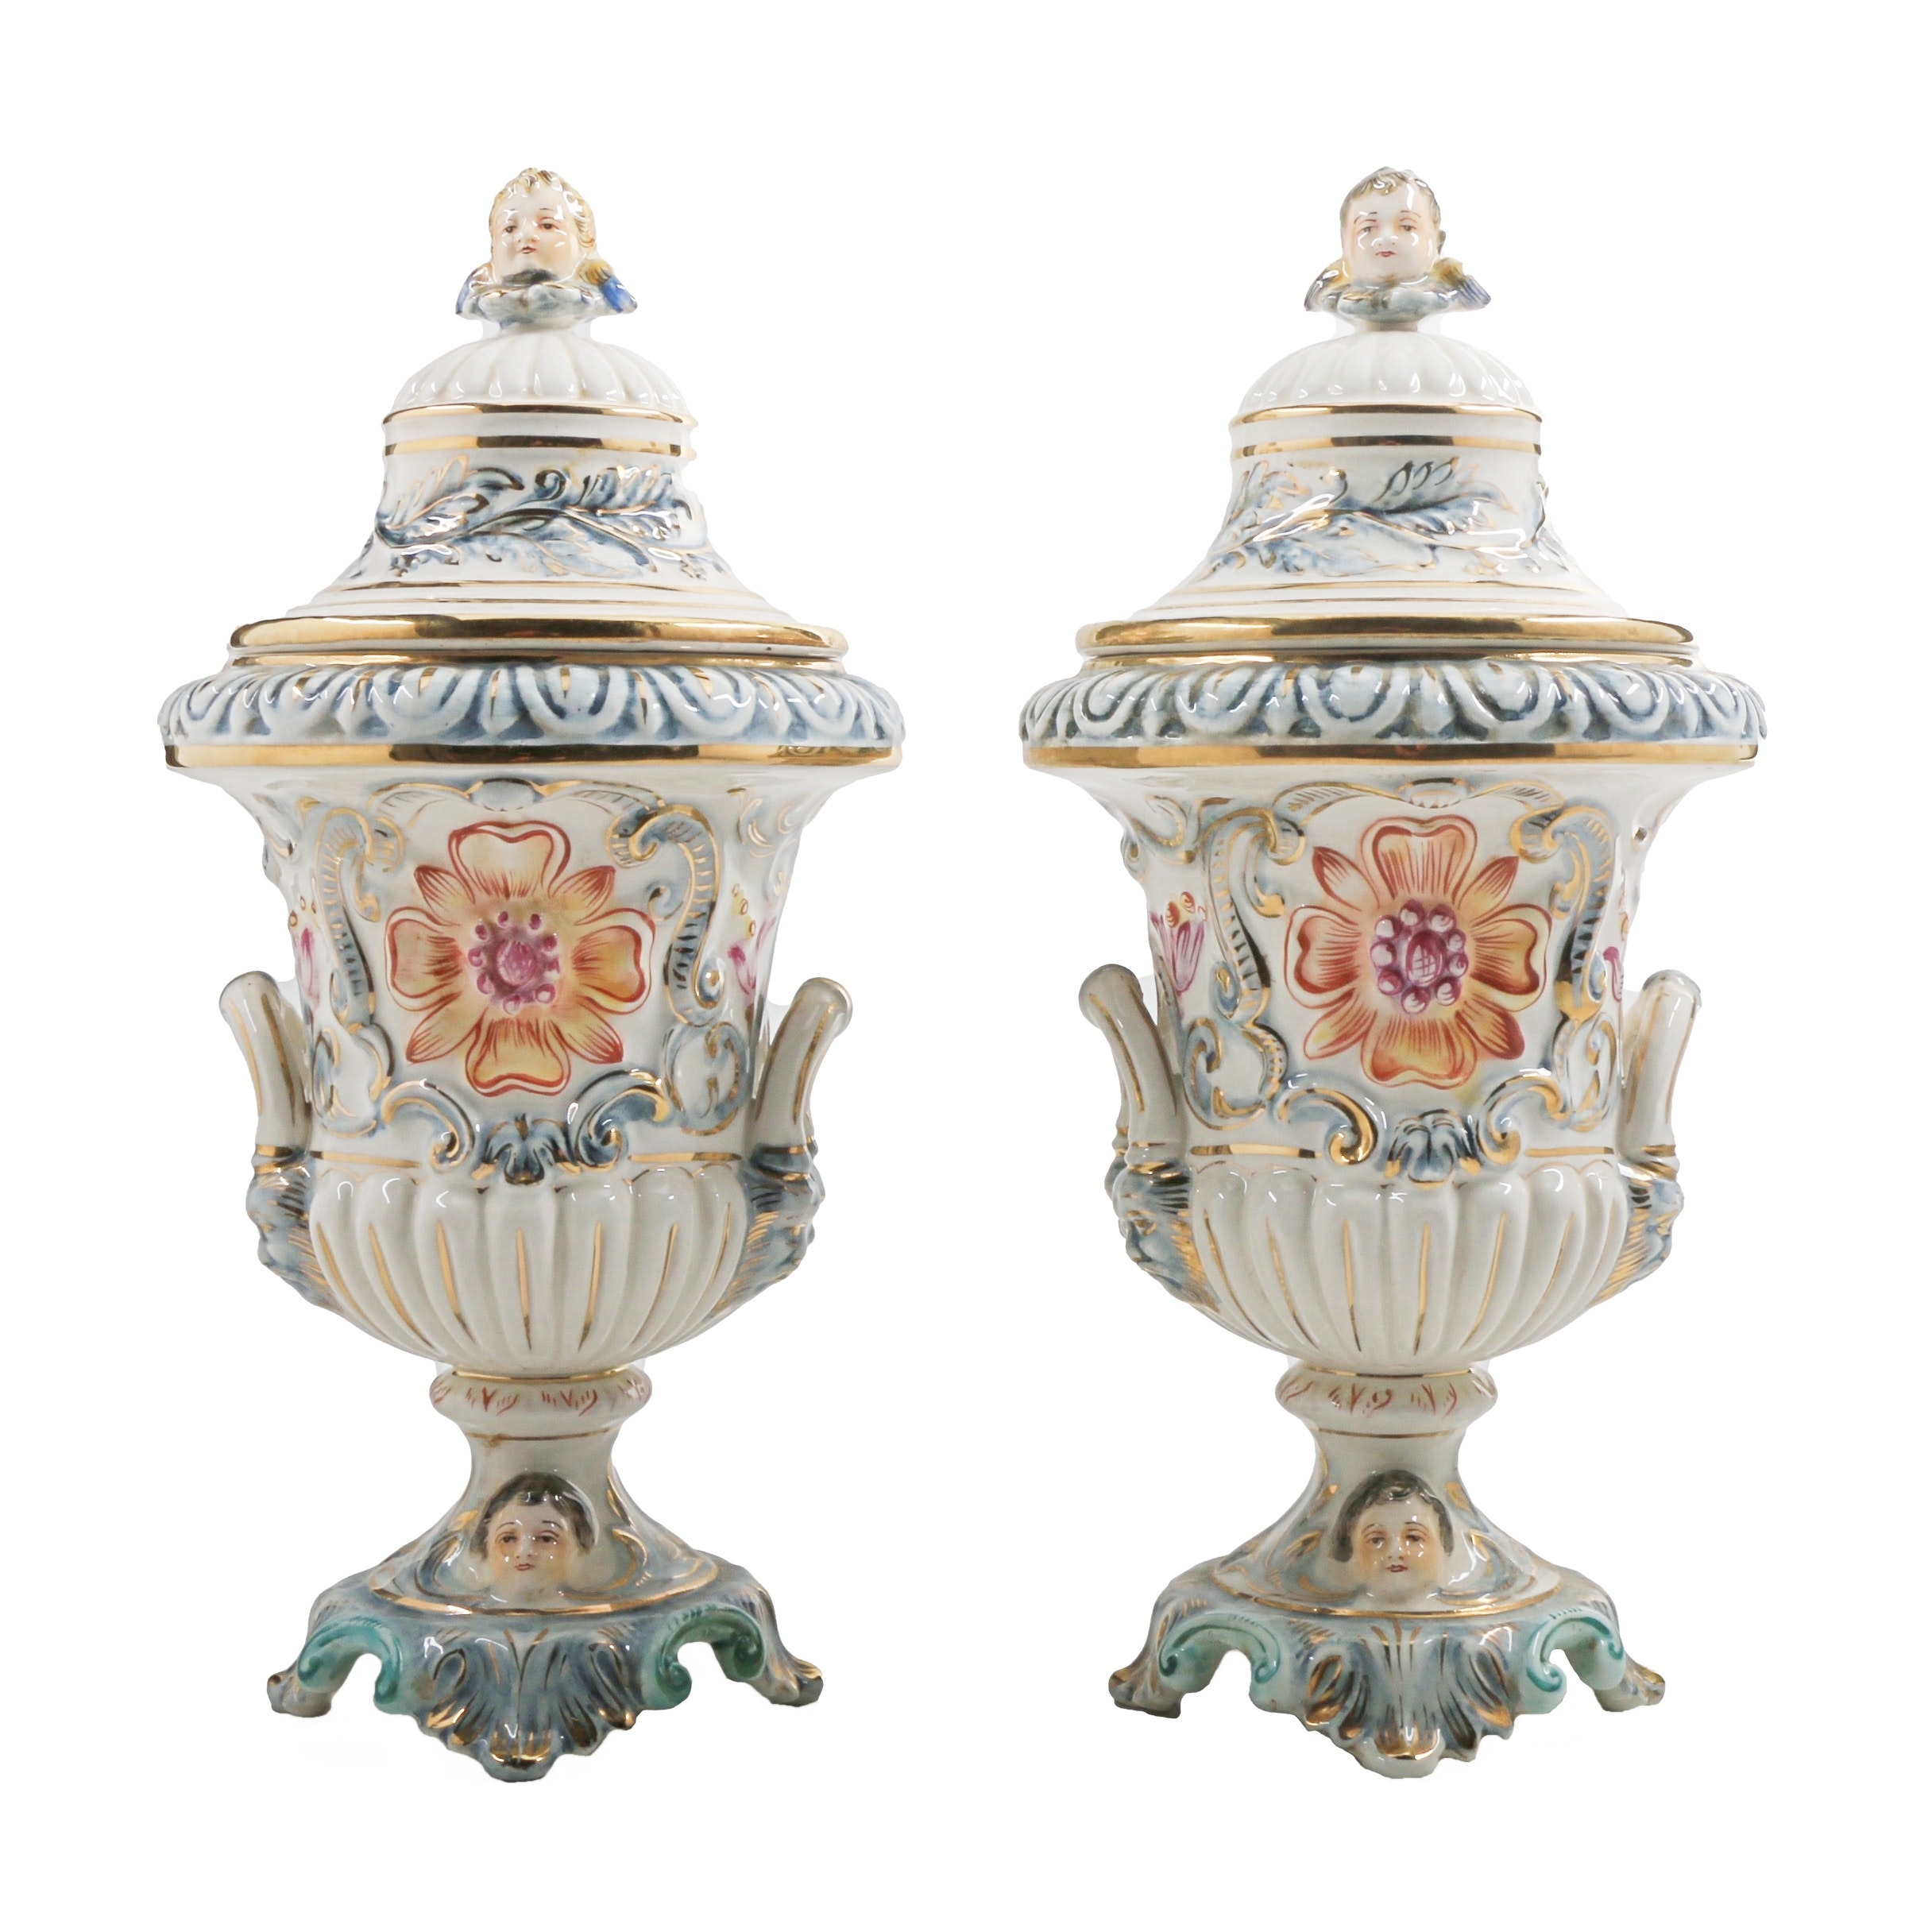 Capodimonte Porcelain Lidded Urns with Figural Handles